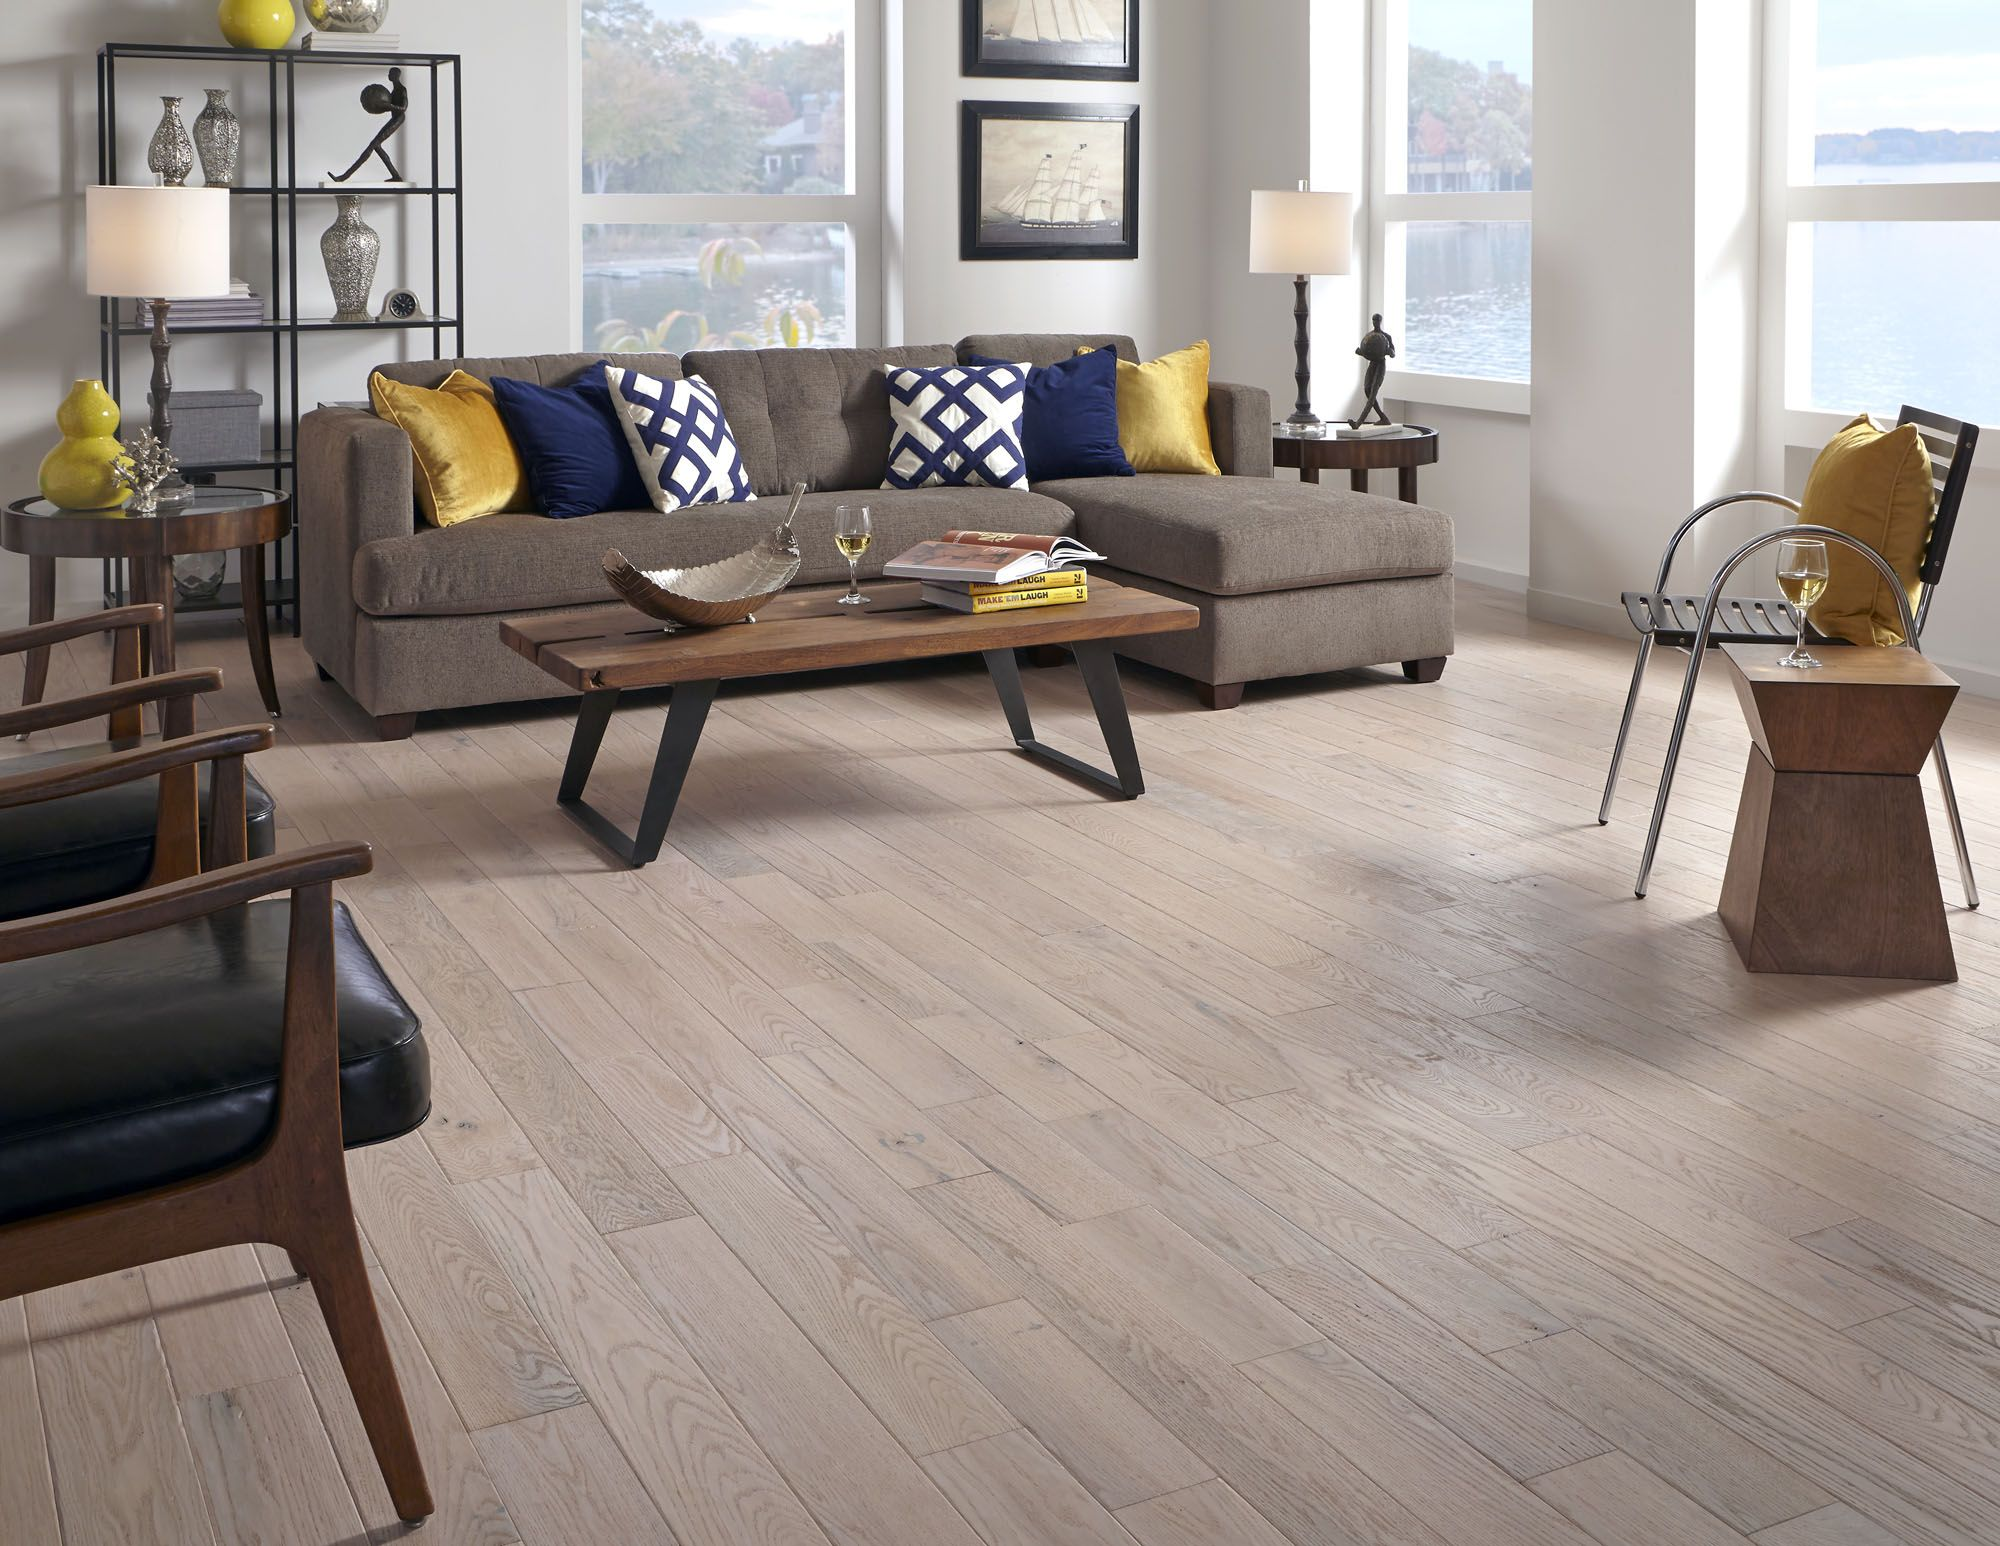 Seabrook Island Oak is refreshing & casual – perfect for those